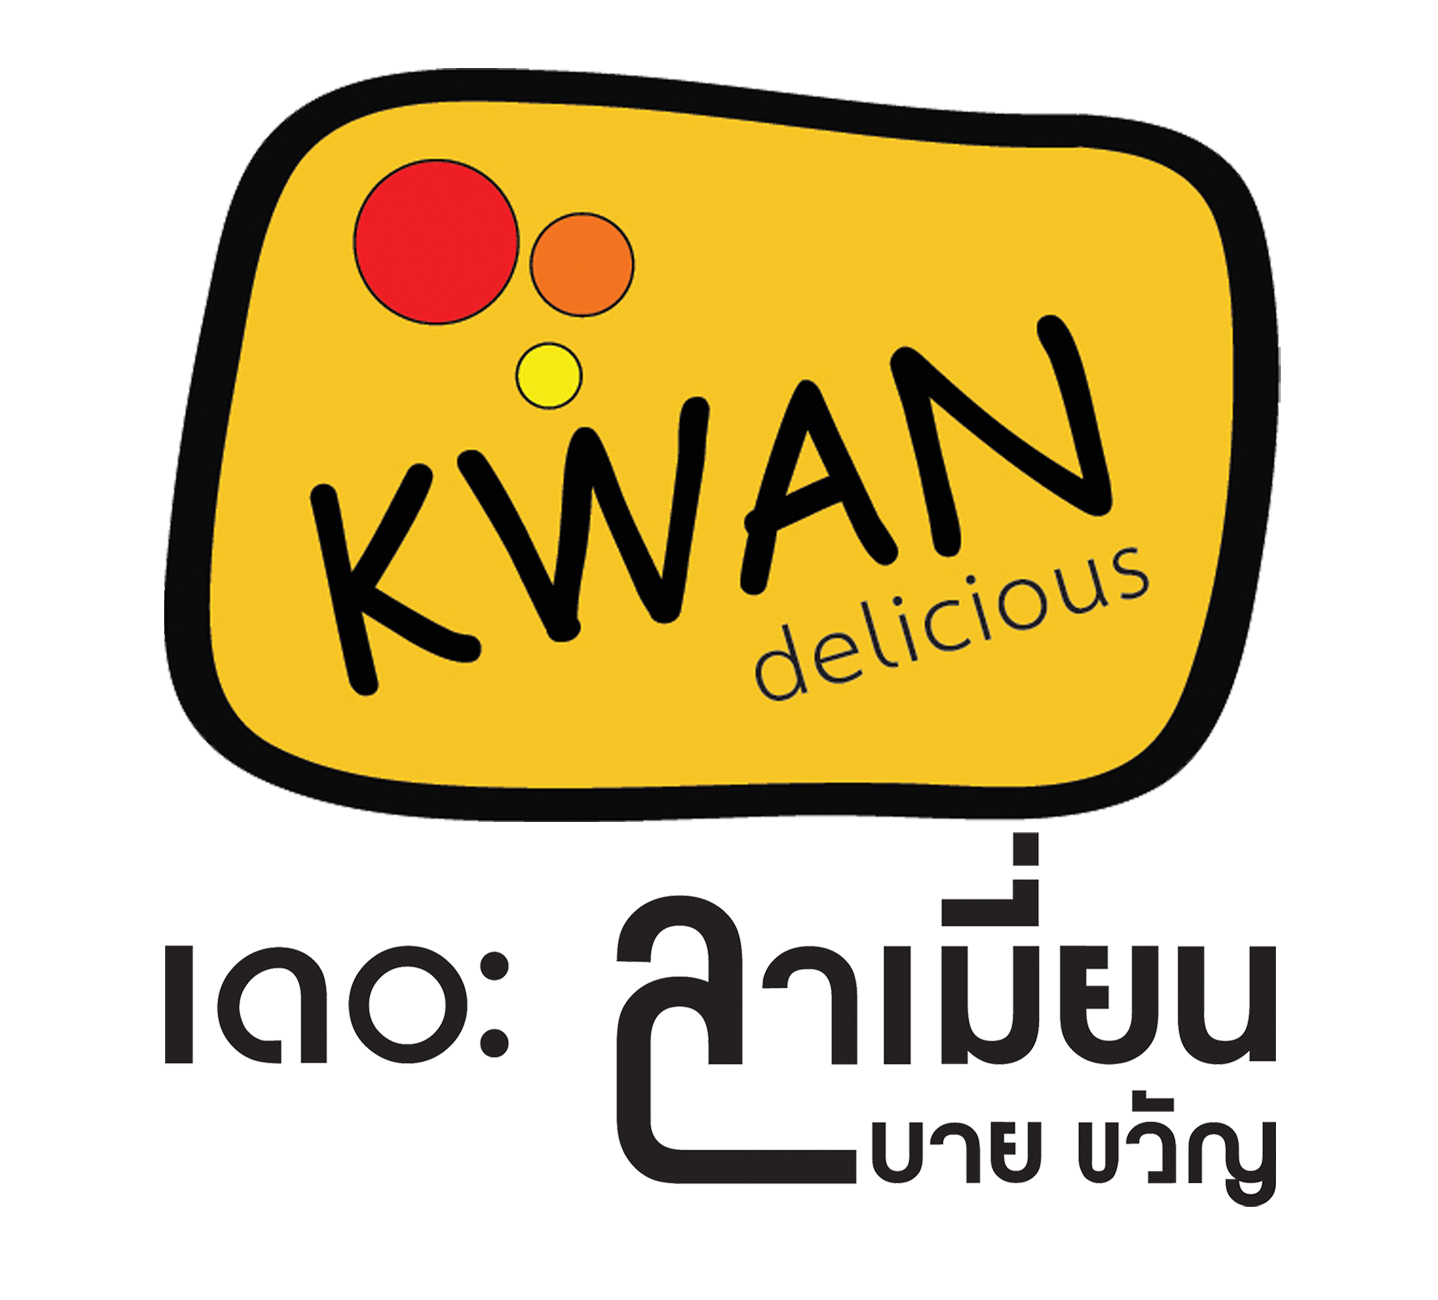 The Lamian by Kwan